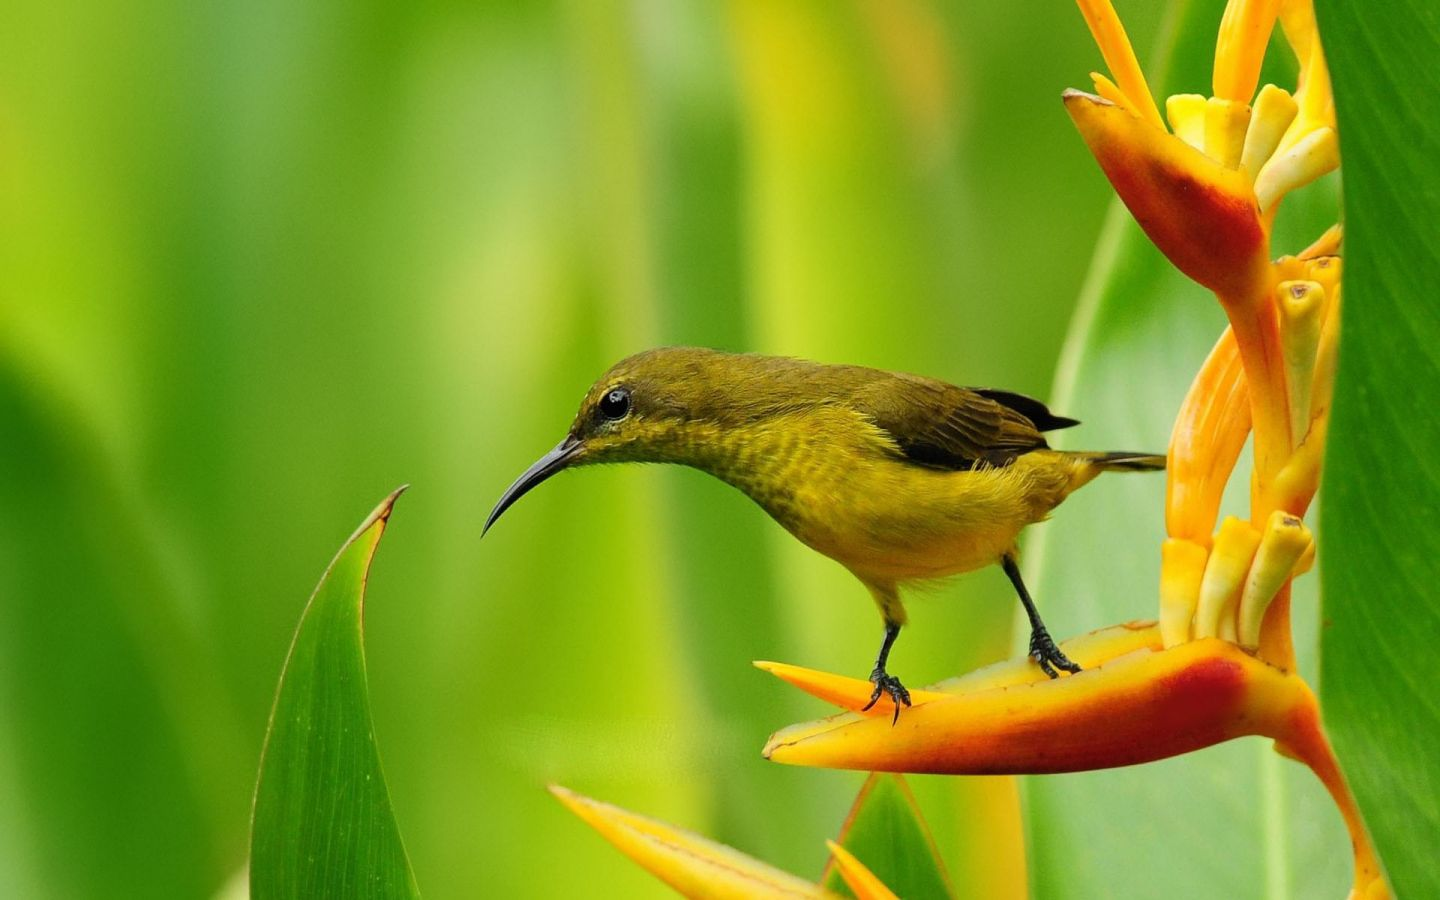 Small Bird On Bird Of Paradise Flower Wallpaper 1440x900